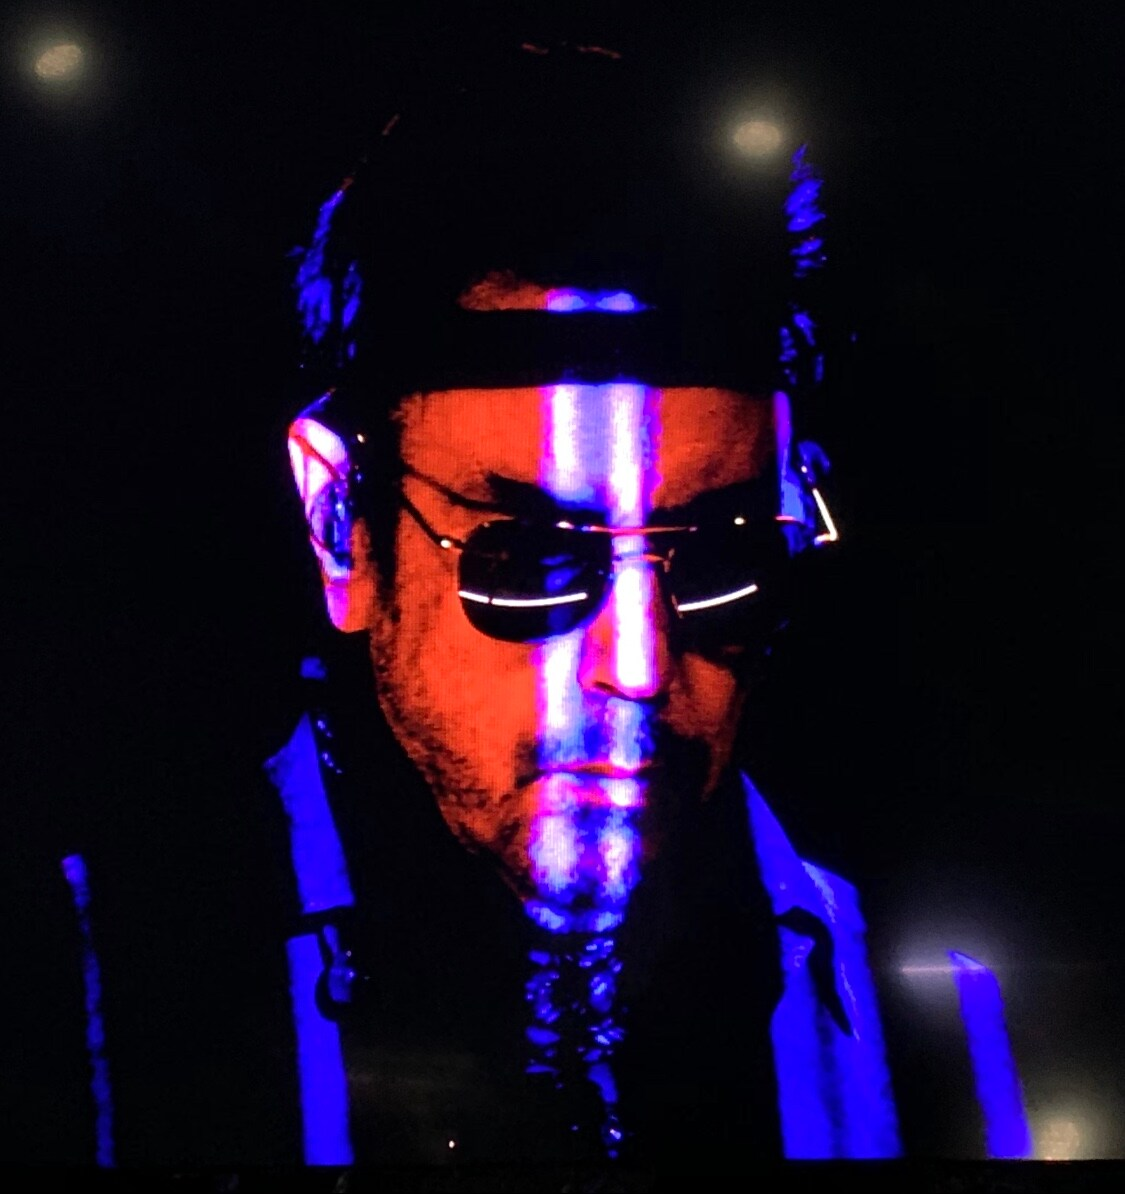 Portrait of the musician Jean Michel Jarre wearing sunglasses and a black headband with blue and red light streaking on his face and dark backlighting